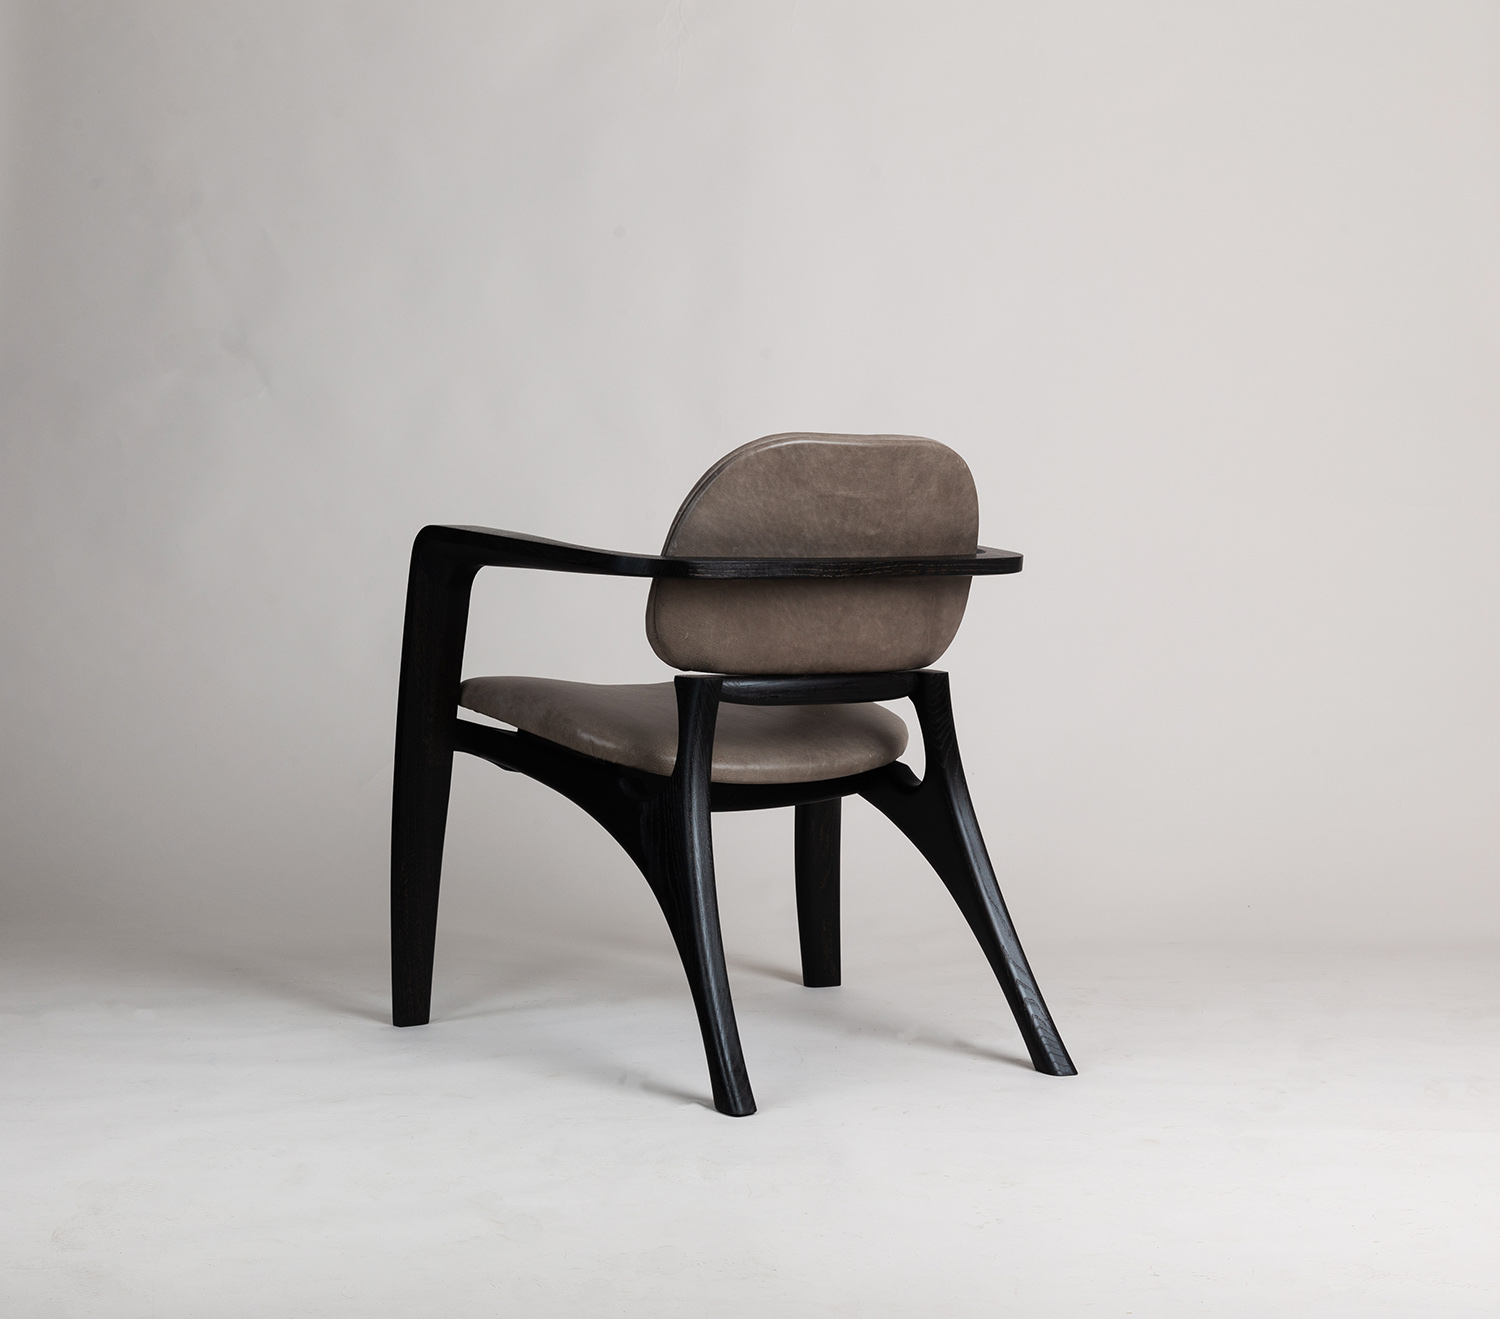 Amplex Chair by Alan Flannery Furniture Design L15.jpg